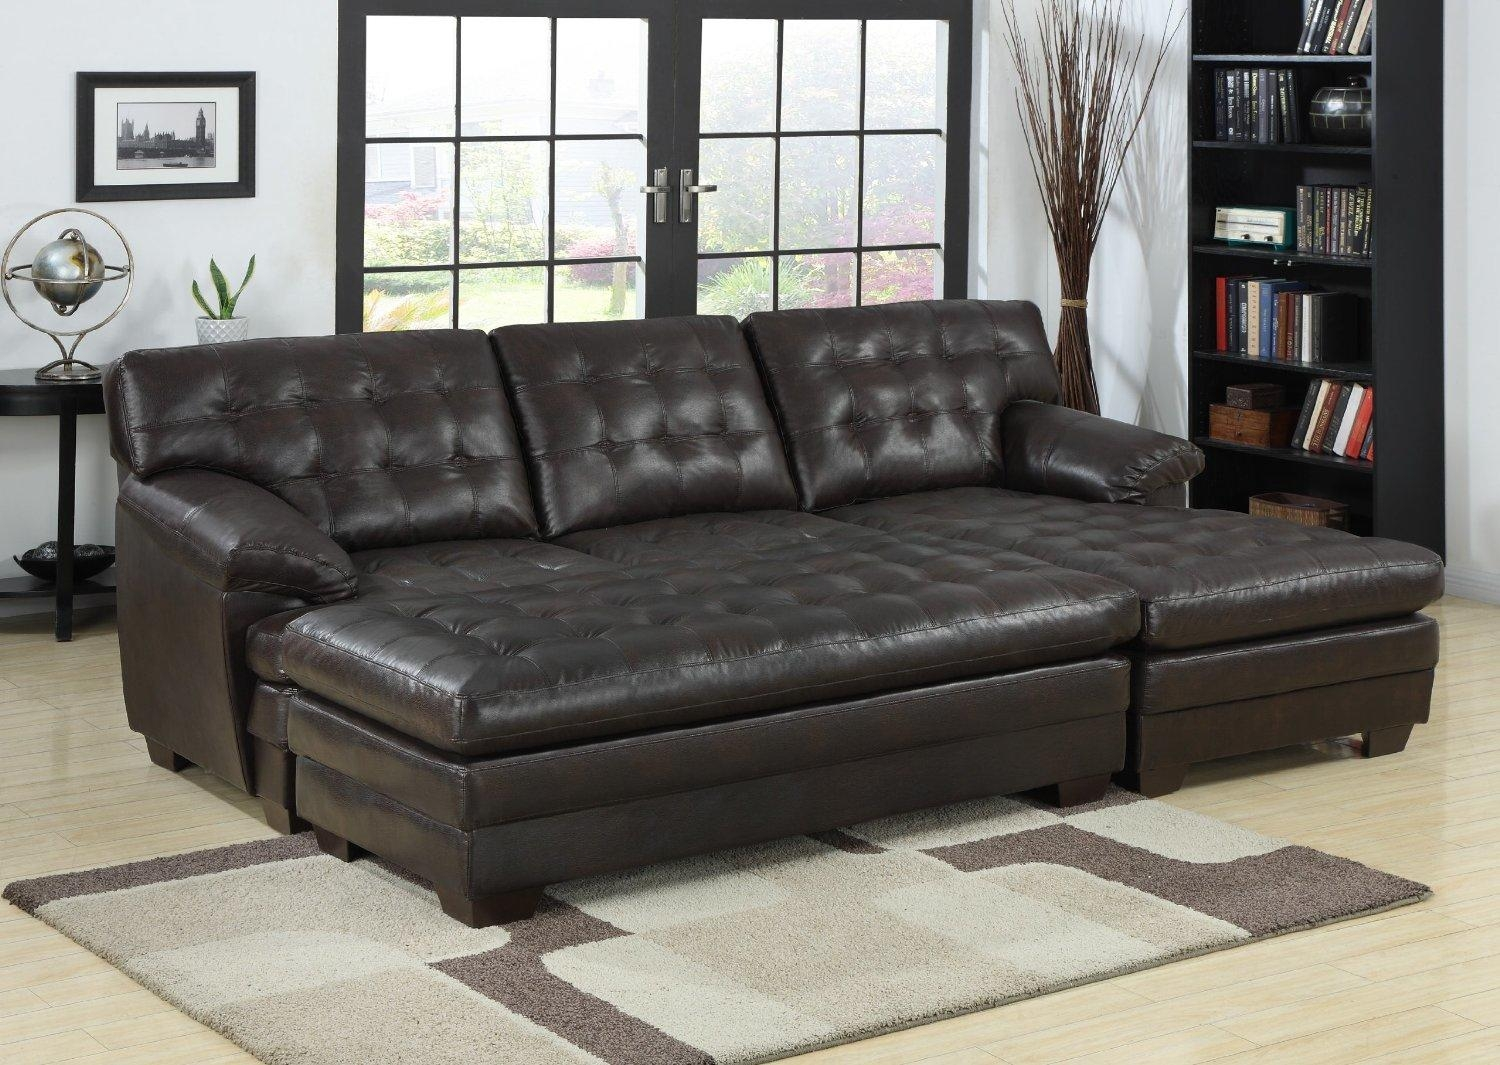 20 top sofas with chaise longue sofa ideas - Sofa rinconera con chaise longue ...